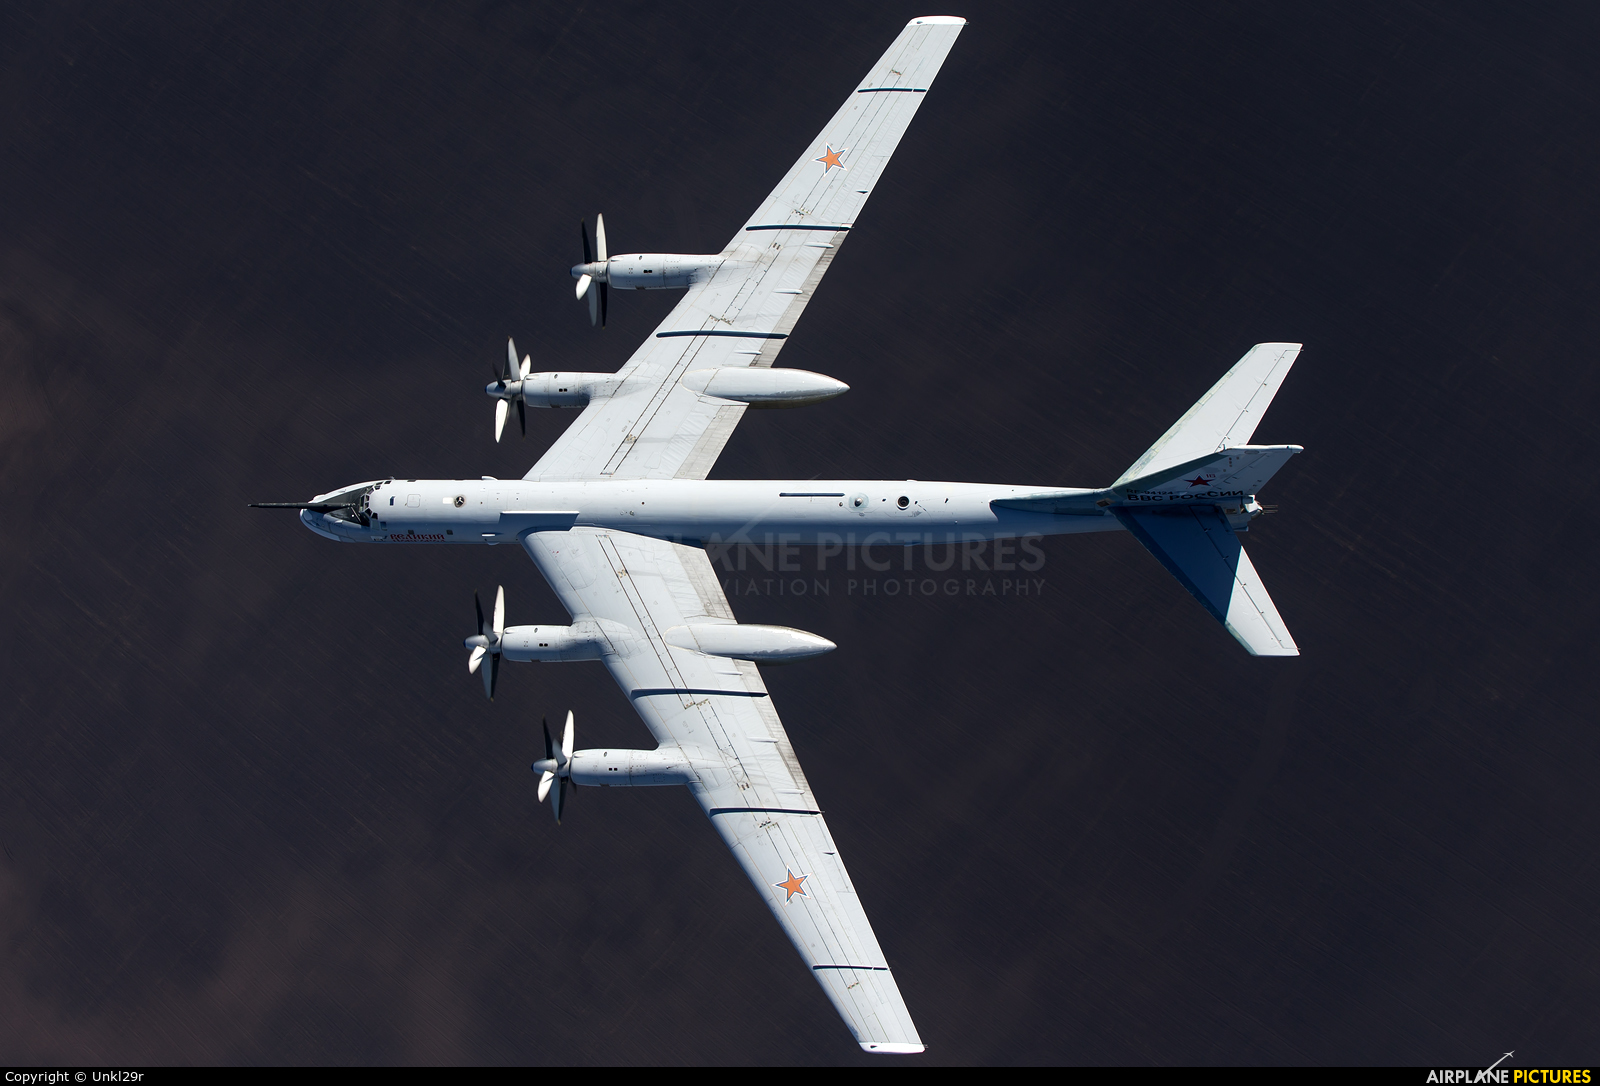 Russia - Air Force RF-94124 aircraft at In Flight - Russia